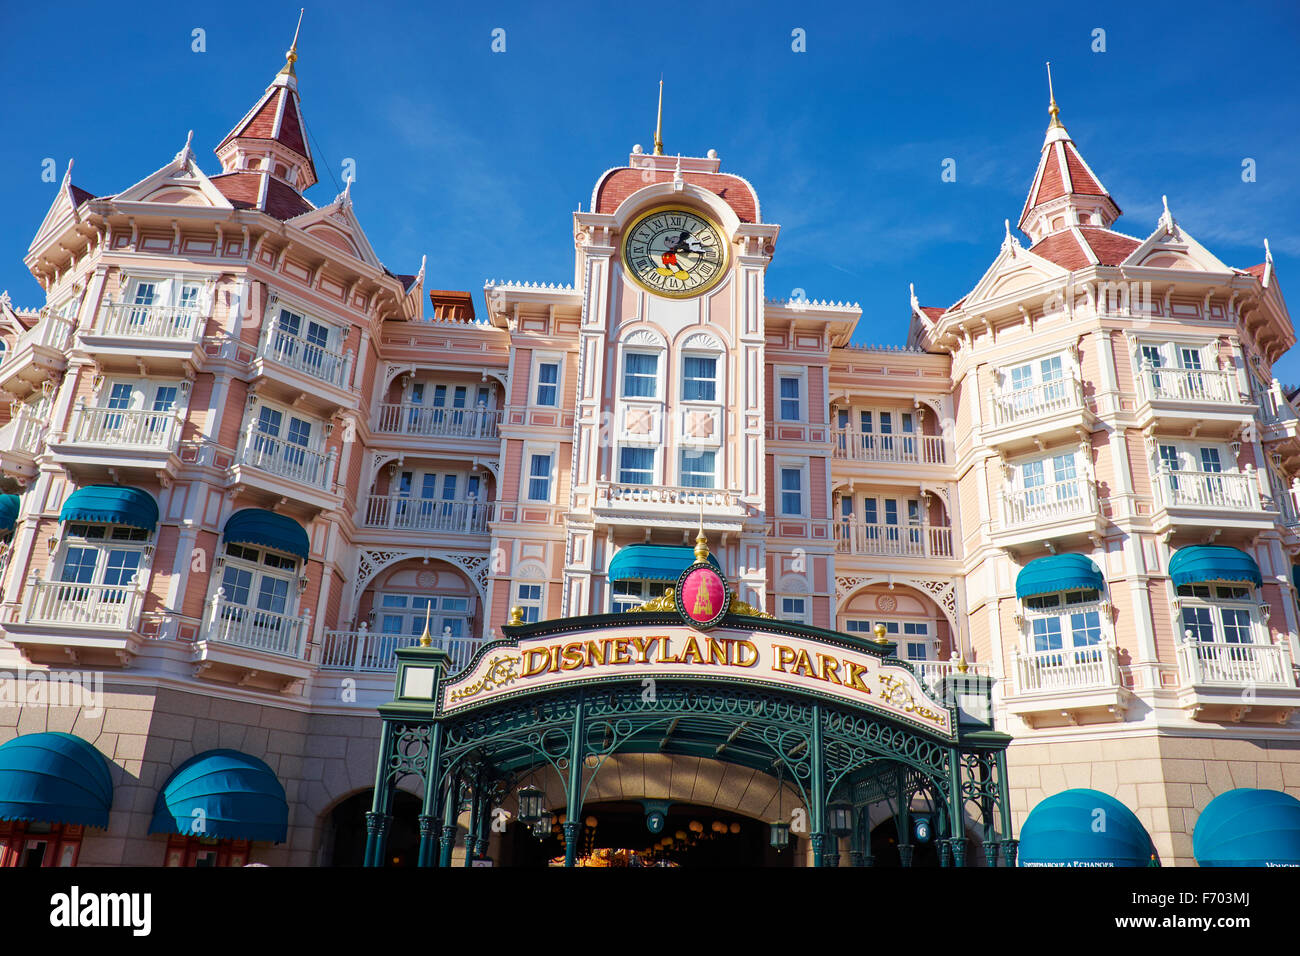 the disneyland hotel and entrance to disneyland paris marne la vallee stock photo 90357362 alamy. Black Bedroom Furniture Sets. Home Design Ideas